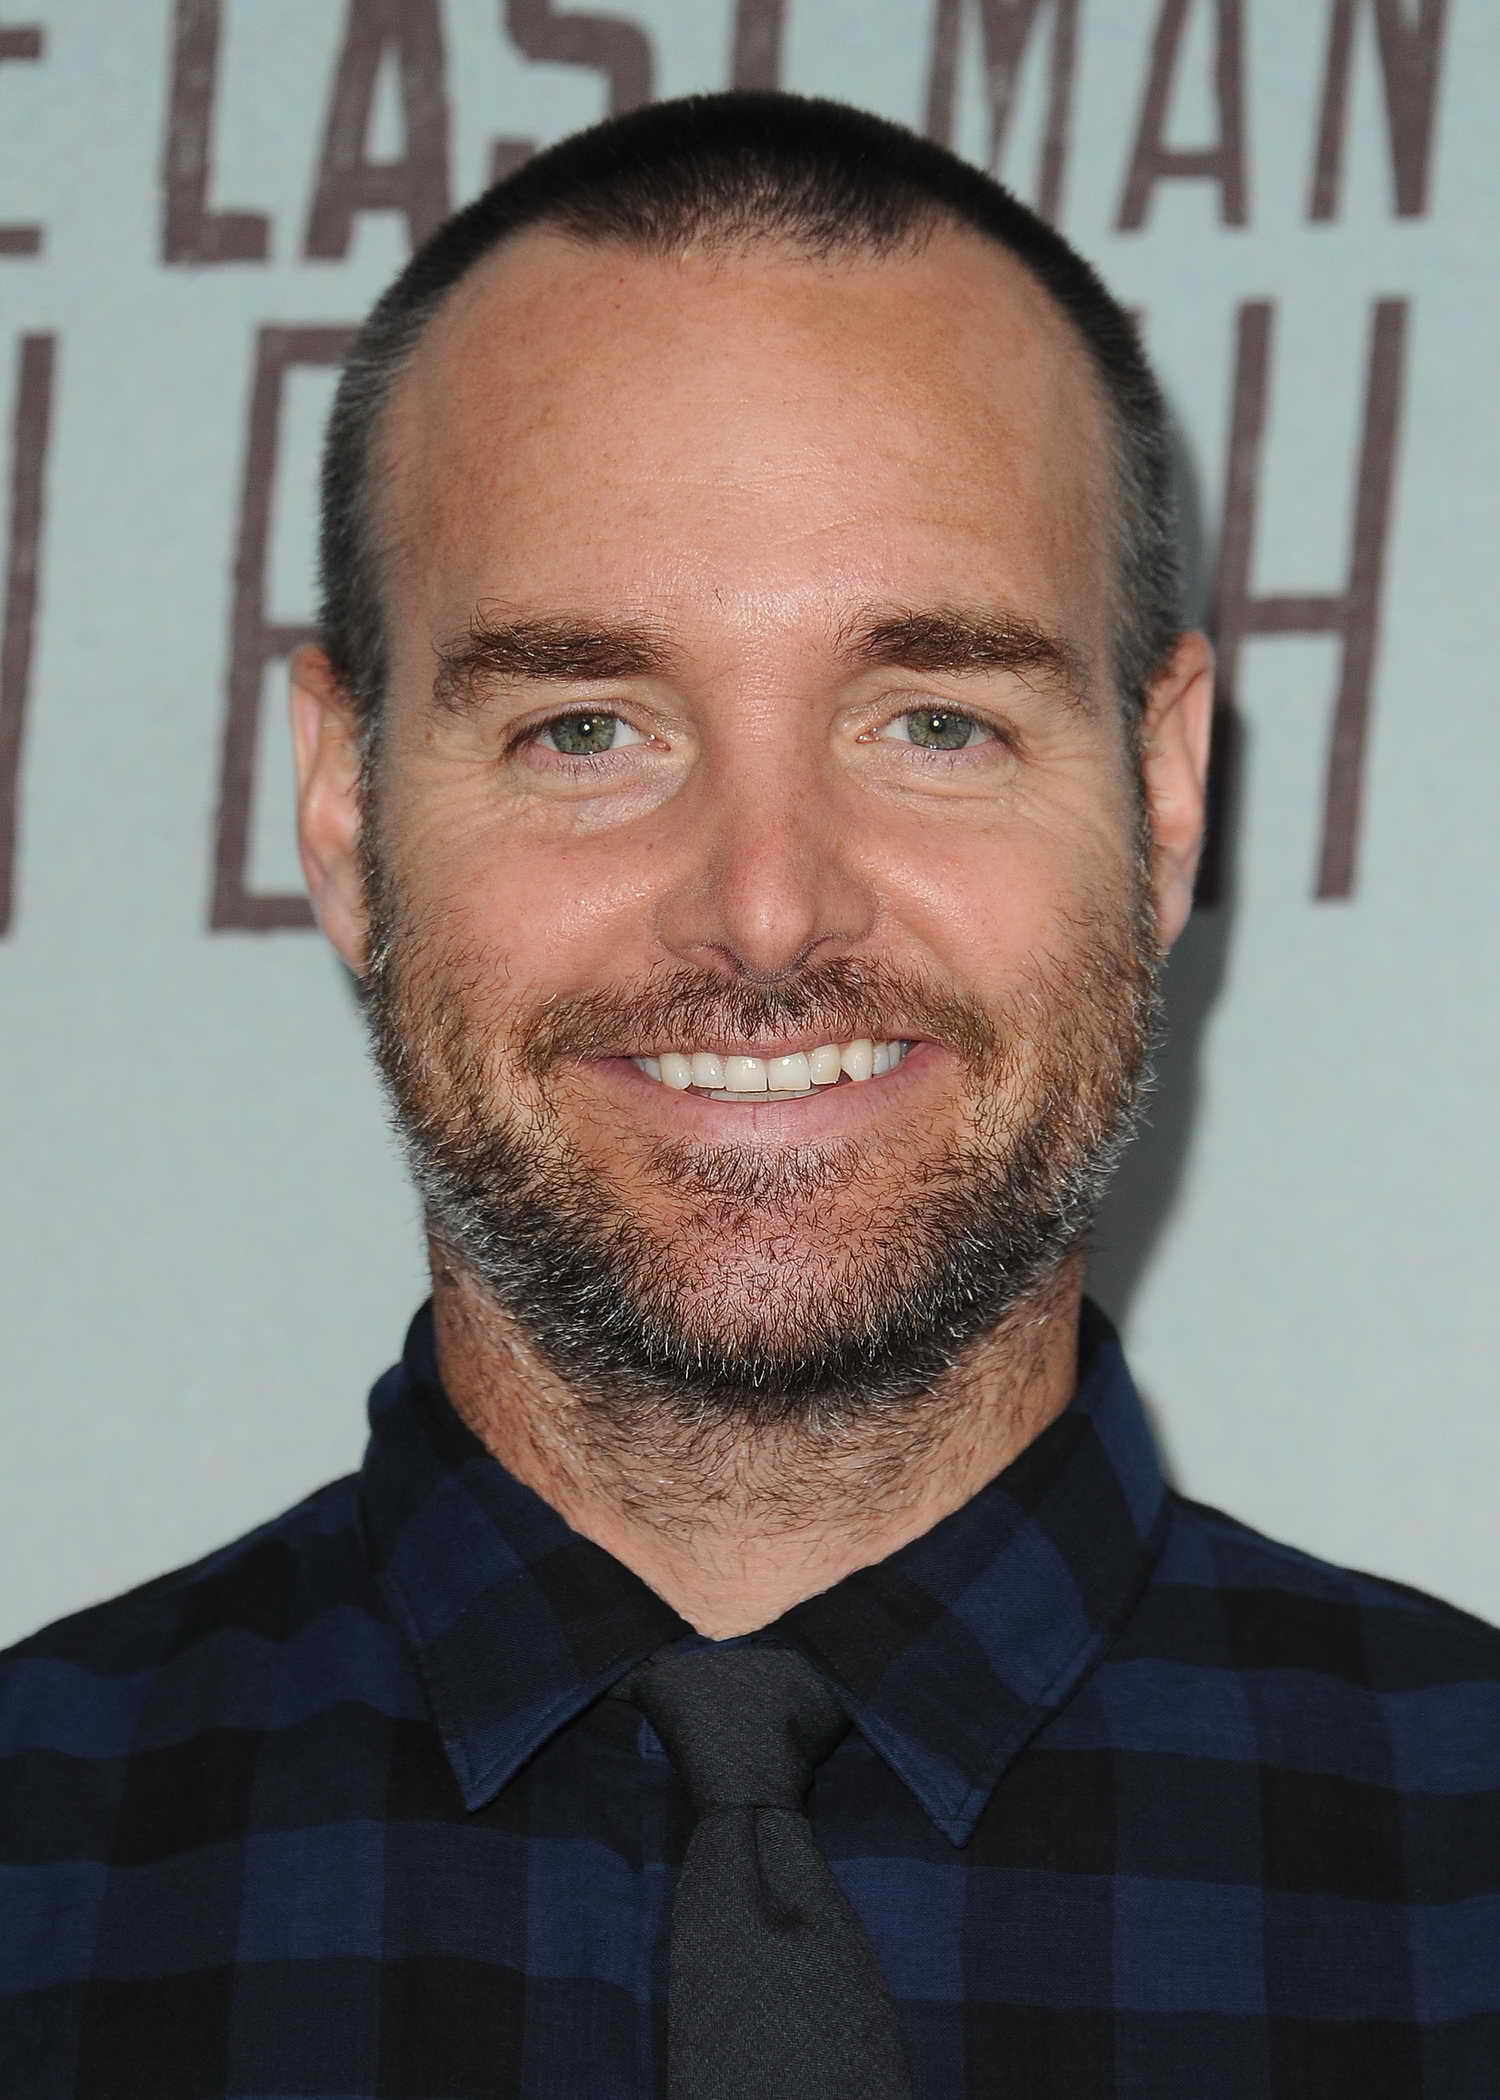 Will Forte At The Last Man On Earth Fyc Screening In Los Angeles Celeb Donut